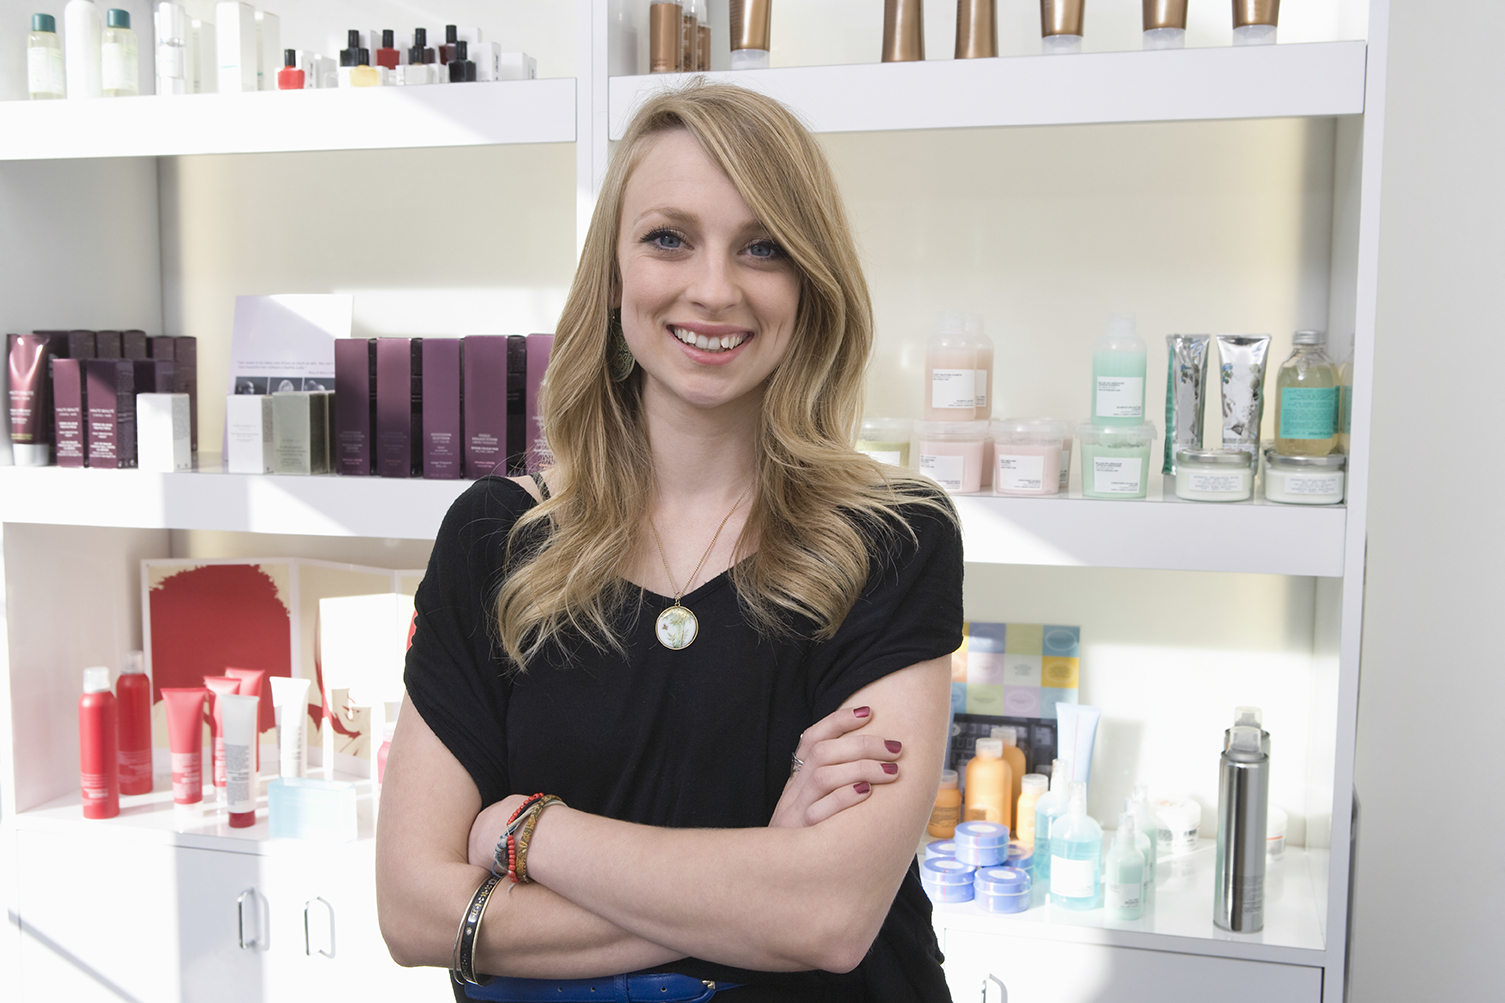 Hair salon business owner standing in front of hair product shelves